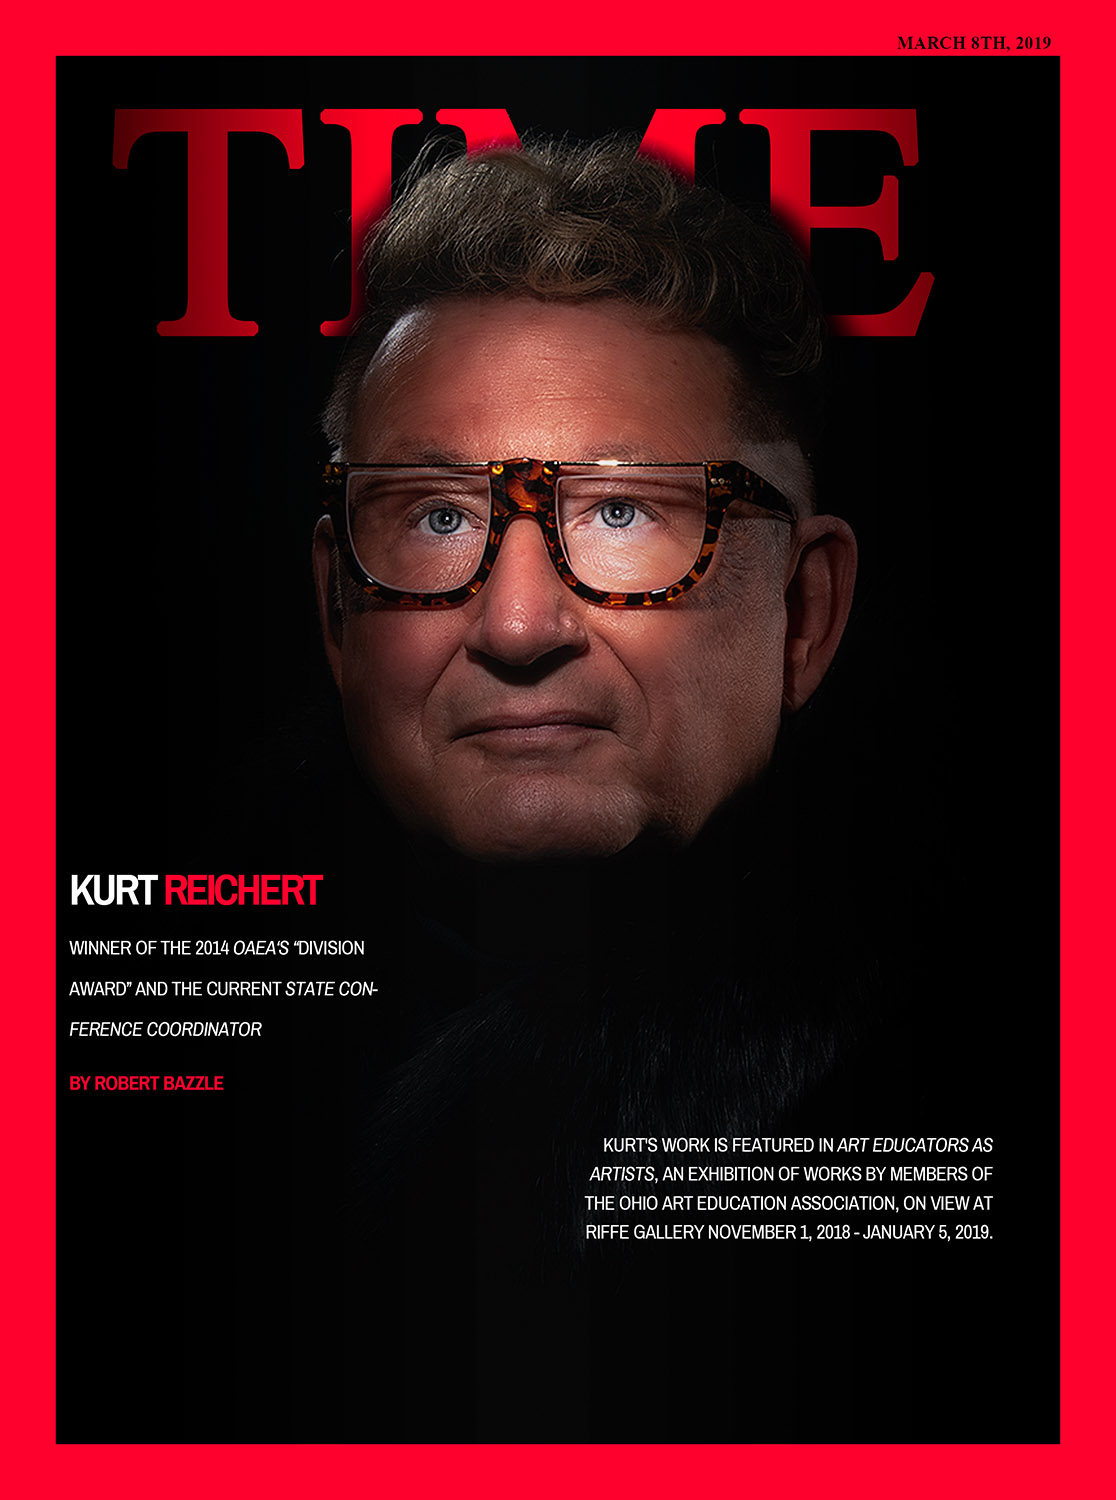 So, for the fun of it…I did! - Needless to say, this is not official and I do not work for, nor claim to work for Time Magazine.